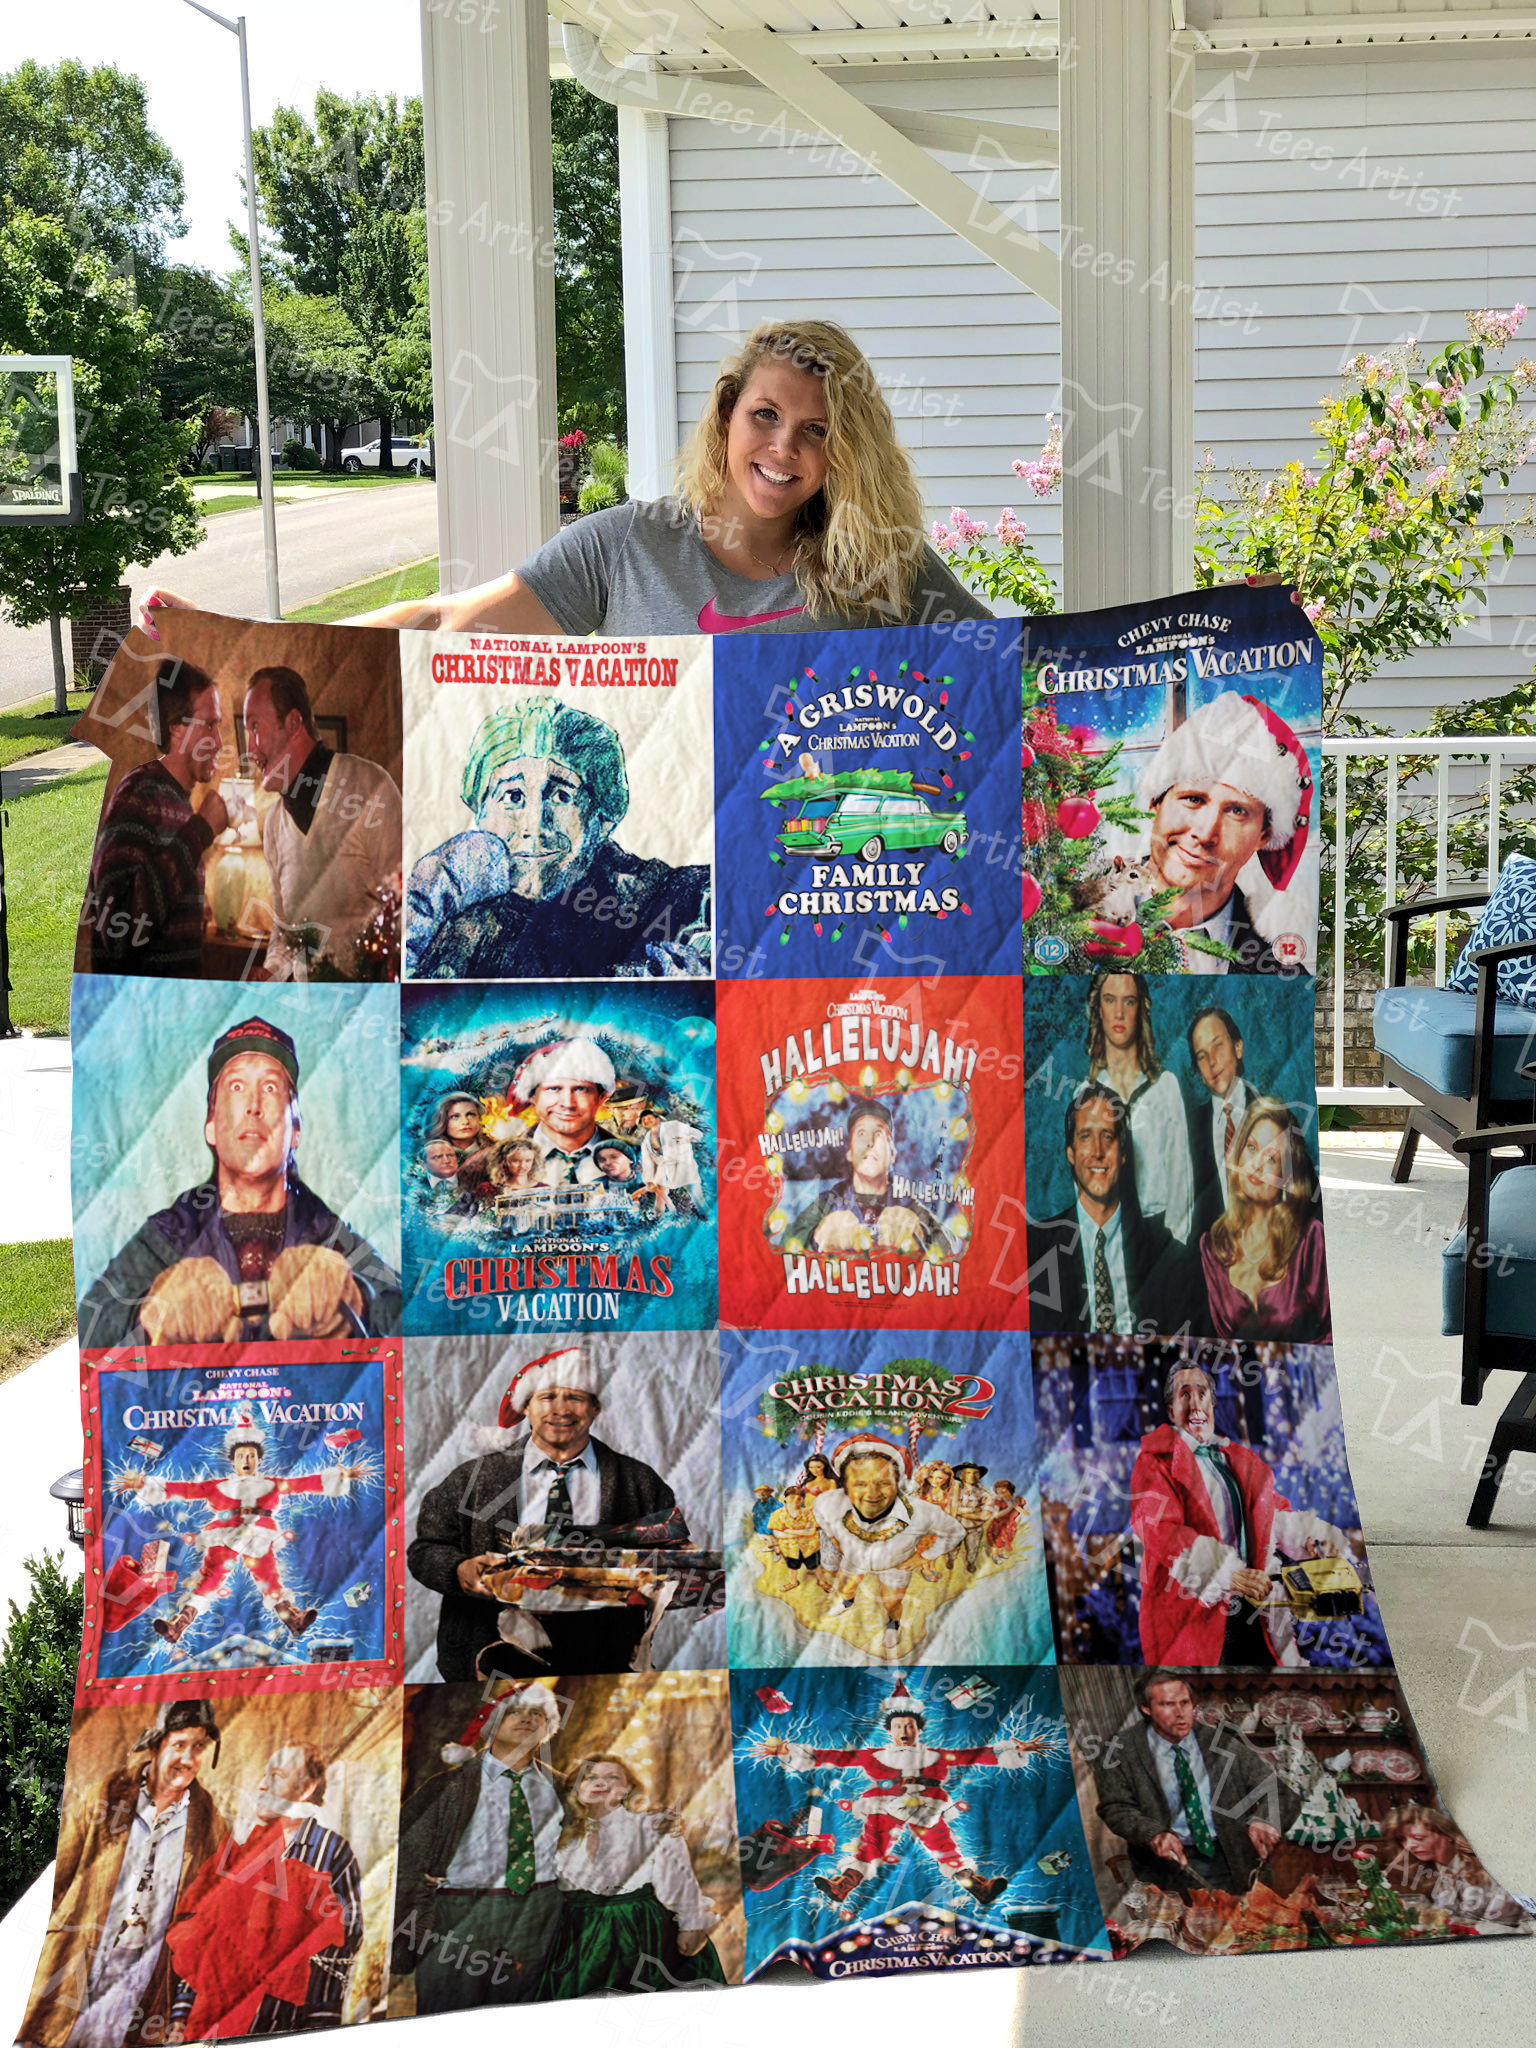 Christmas Vacation Hallelujah.National Lampoon S Christmas Vacation Quilt Blanket 0658